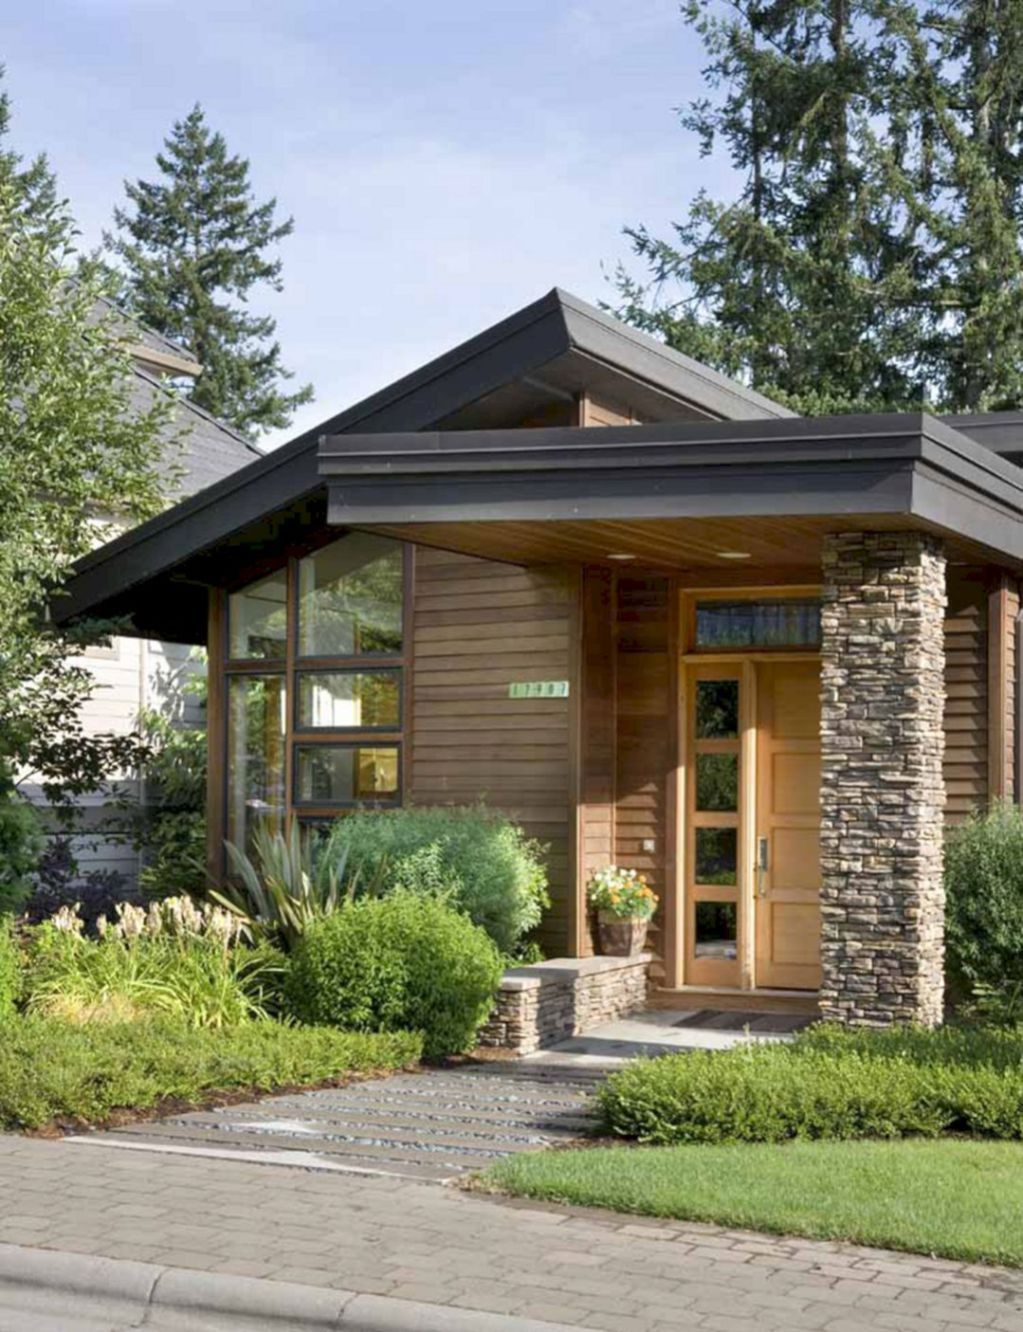 The best modern tiny house design small homes inspirations no also top and collections home rh ar pinterest